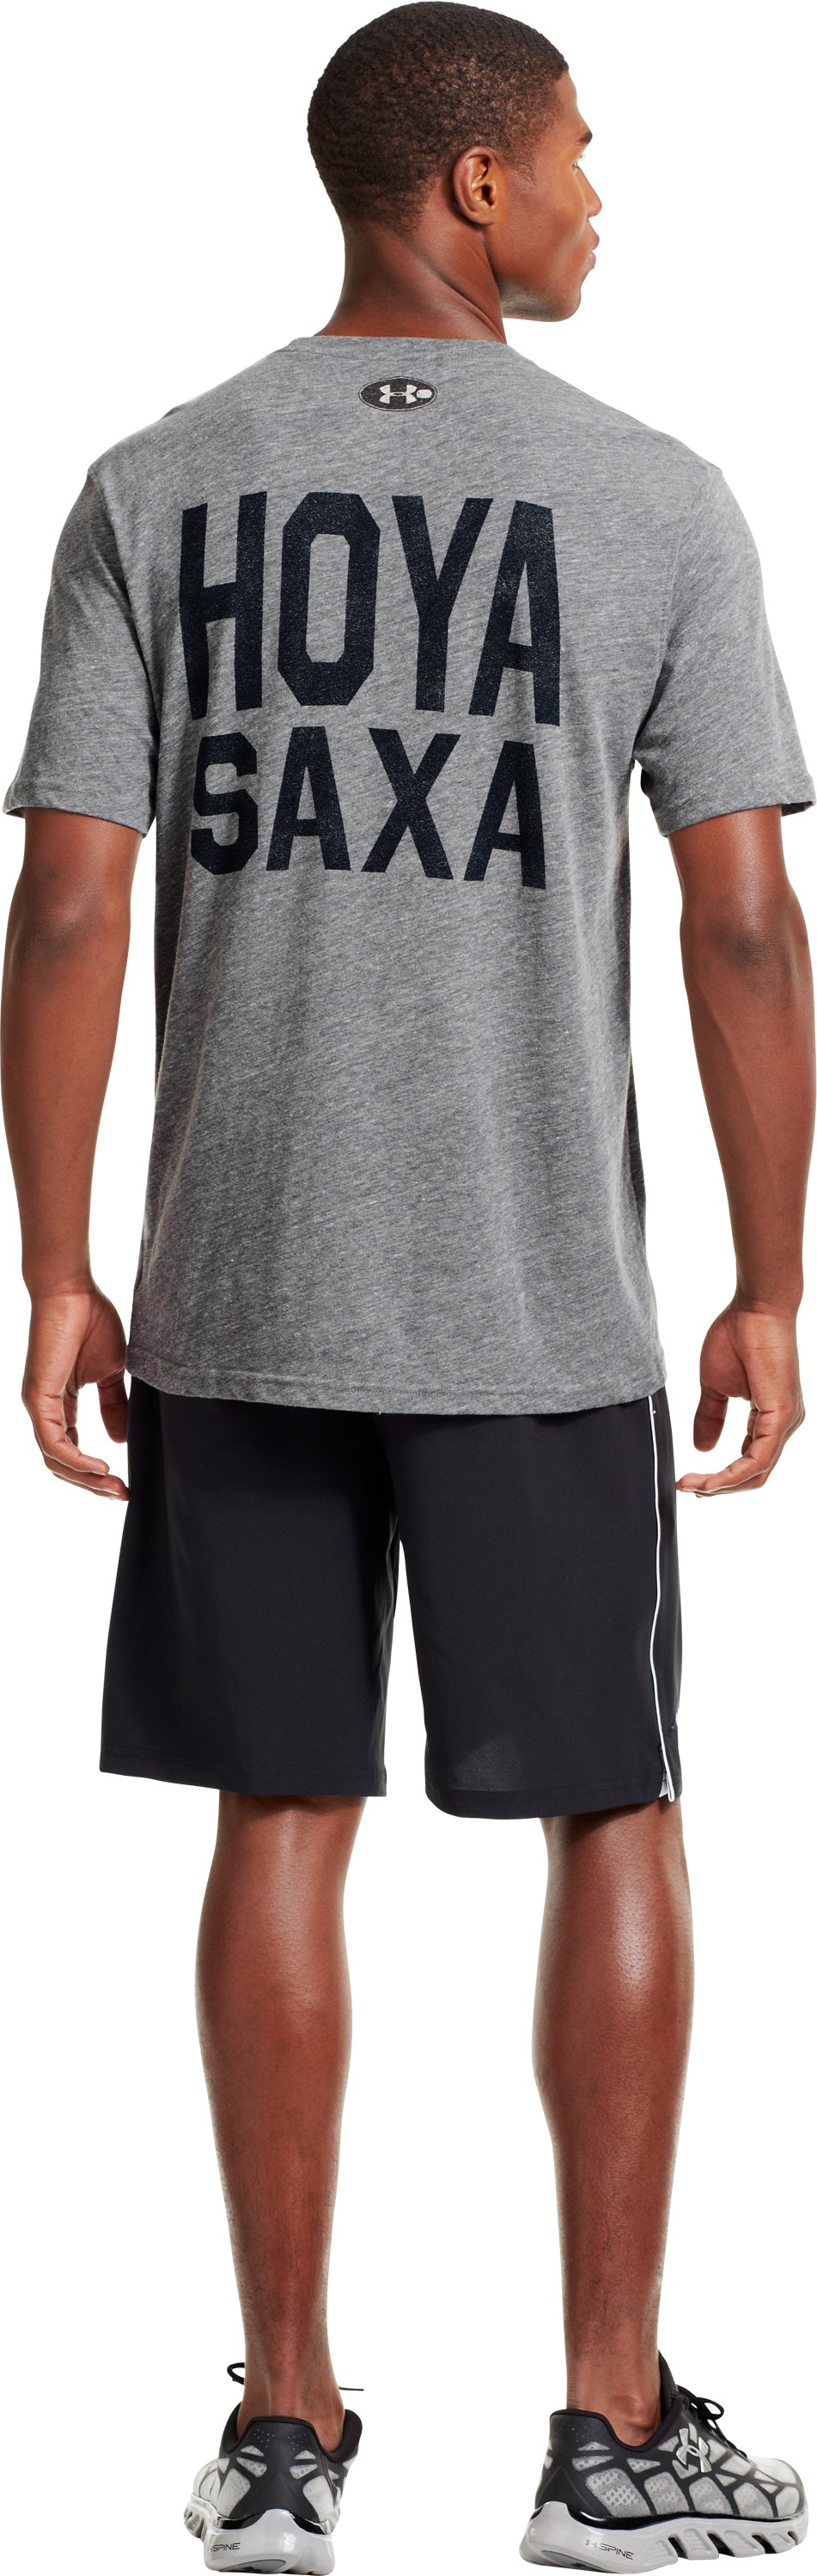 Men's Georgetown Under Armour® Legacy T-Shirt, Gray, Back